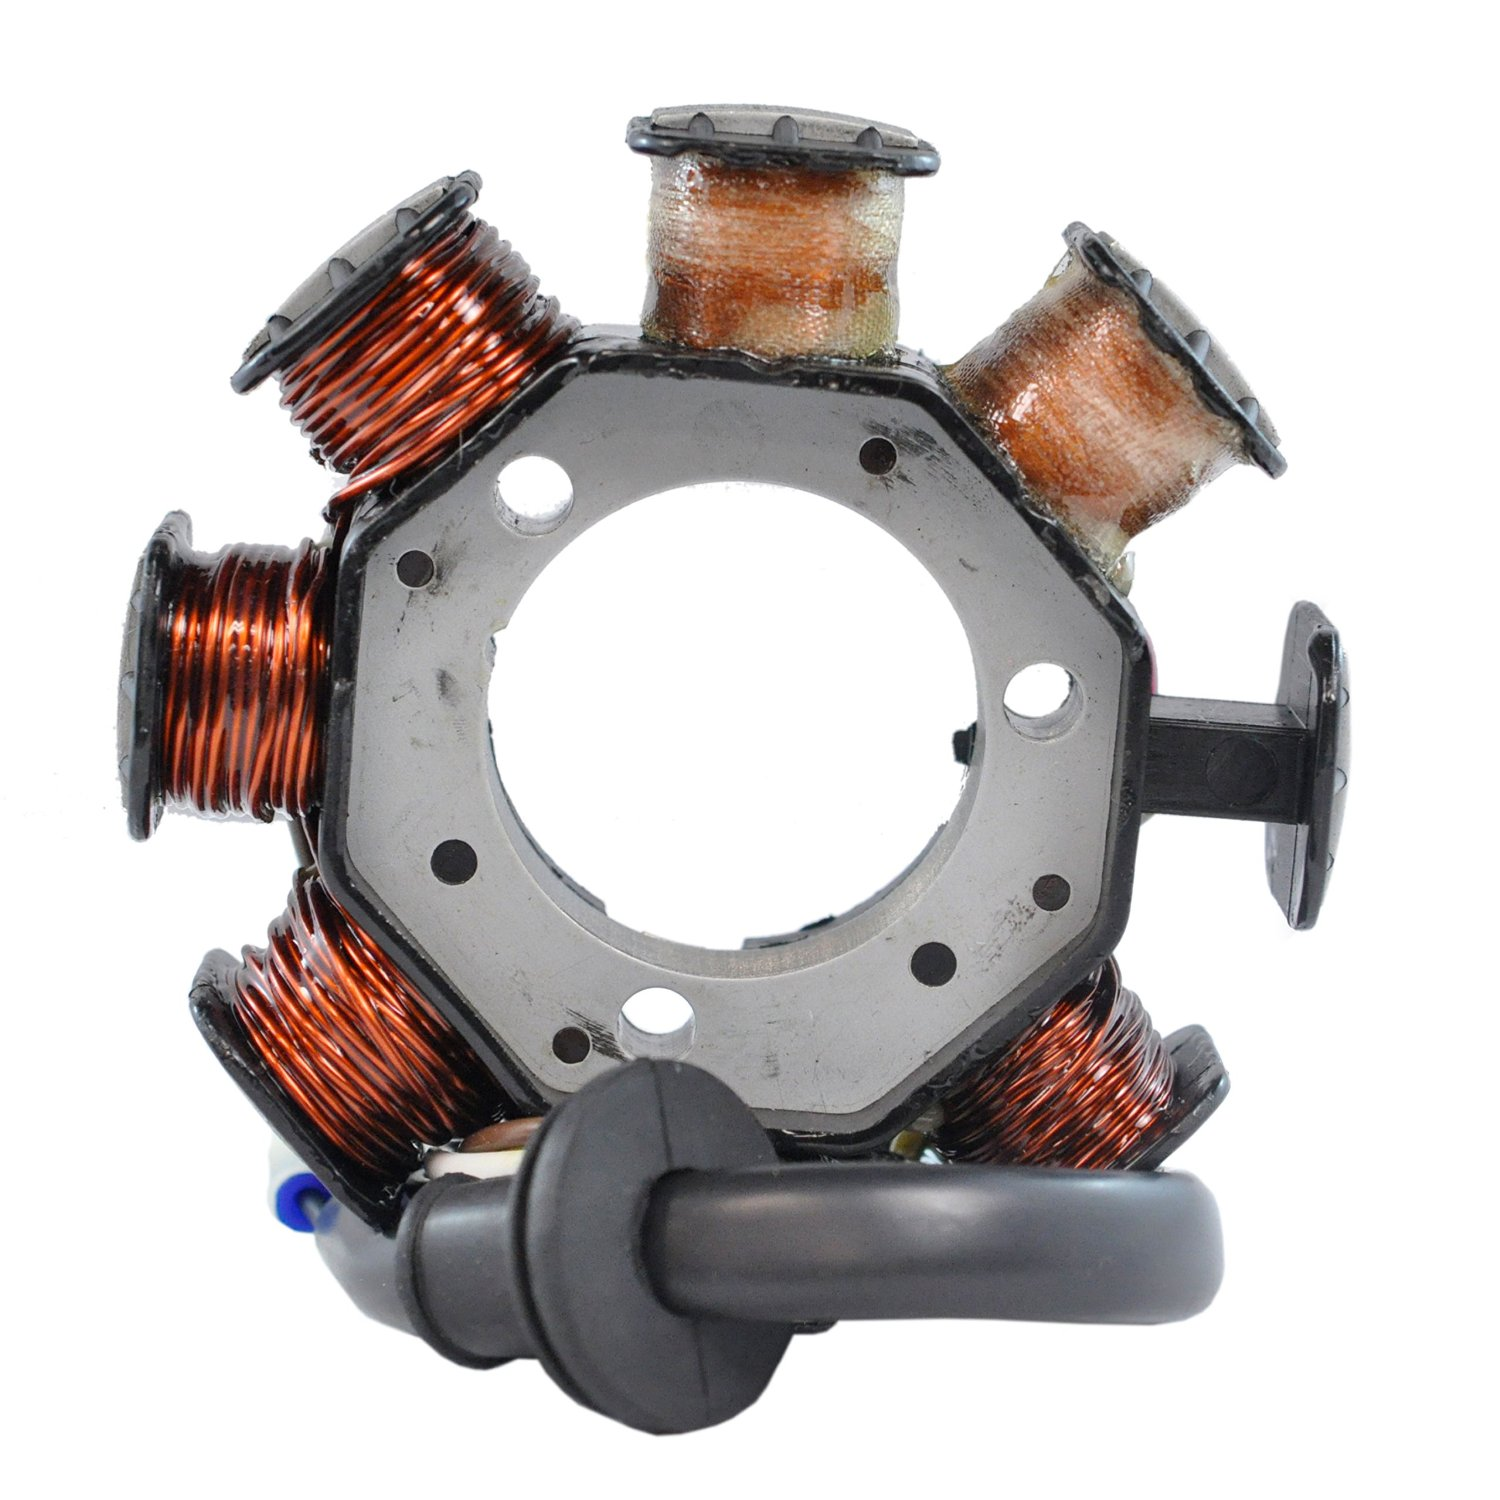 Stator for Yamaha V Max 500 / Deluxe / Electric Start / XT V-Max 600 / Deluxe / Electric Start / ST / XT 1995-1996 OEM Repl.# 8AB-85510-20-00 8AB-85510-10-00